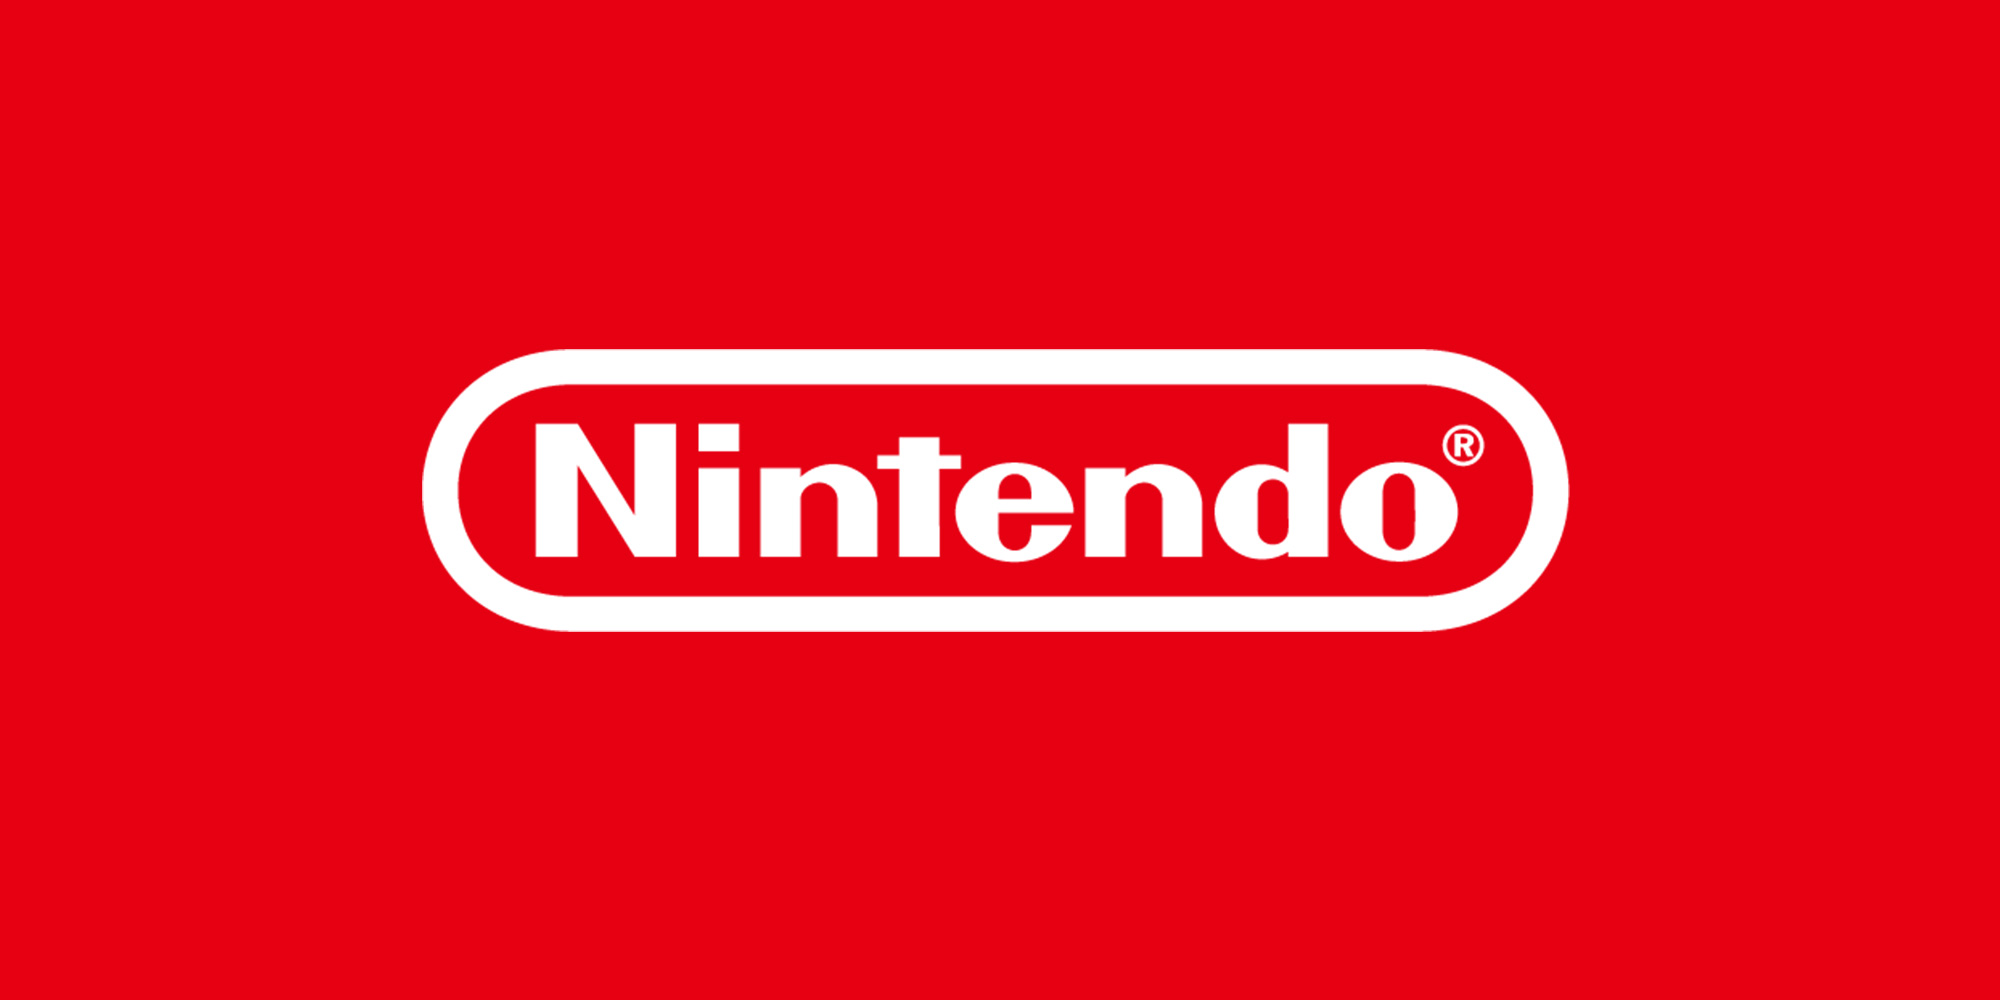 What is Nintendo's official stance on video game piracy?